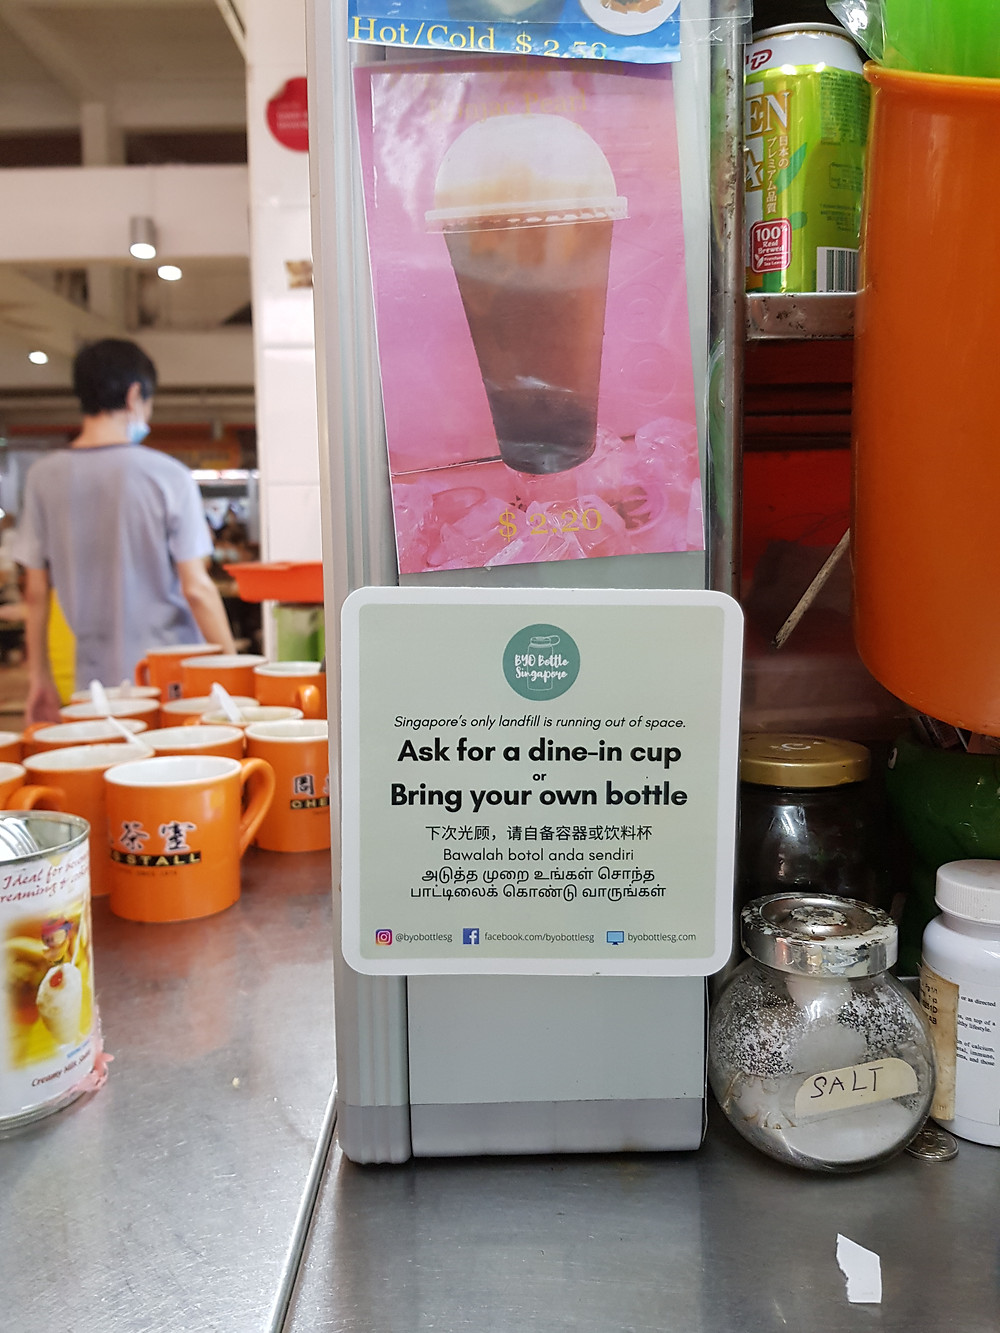 Look out for the BYO Bottle Singapore stickers that encourage reuse of personal bottles